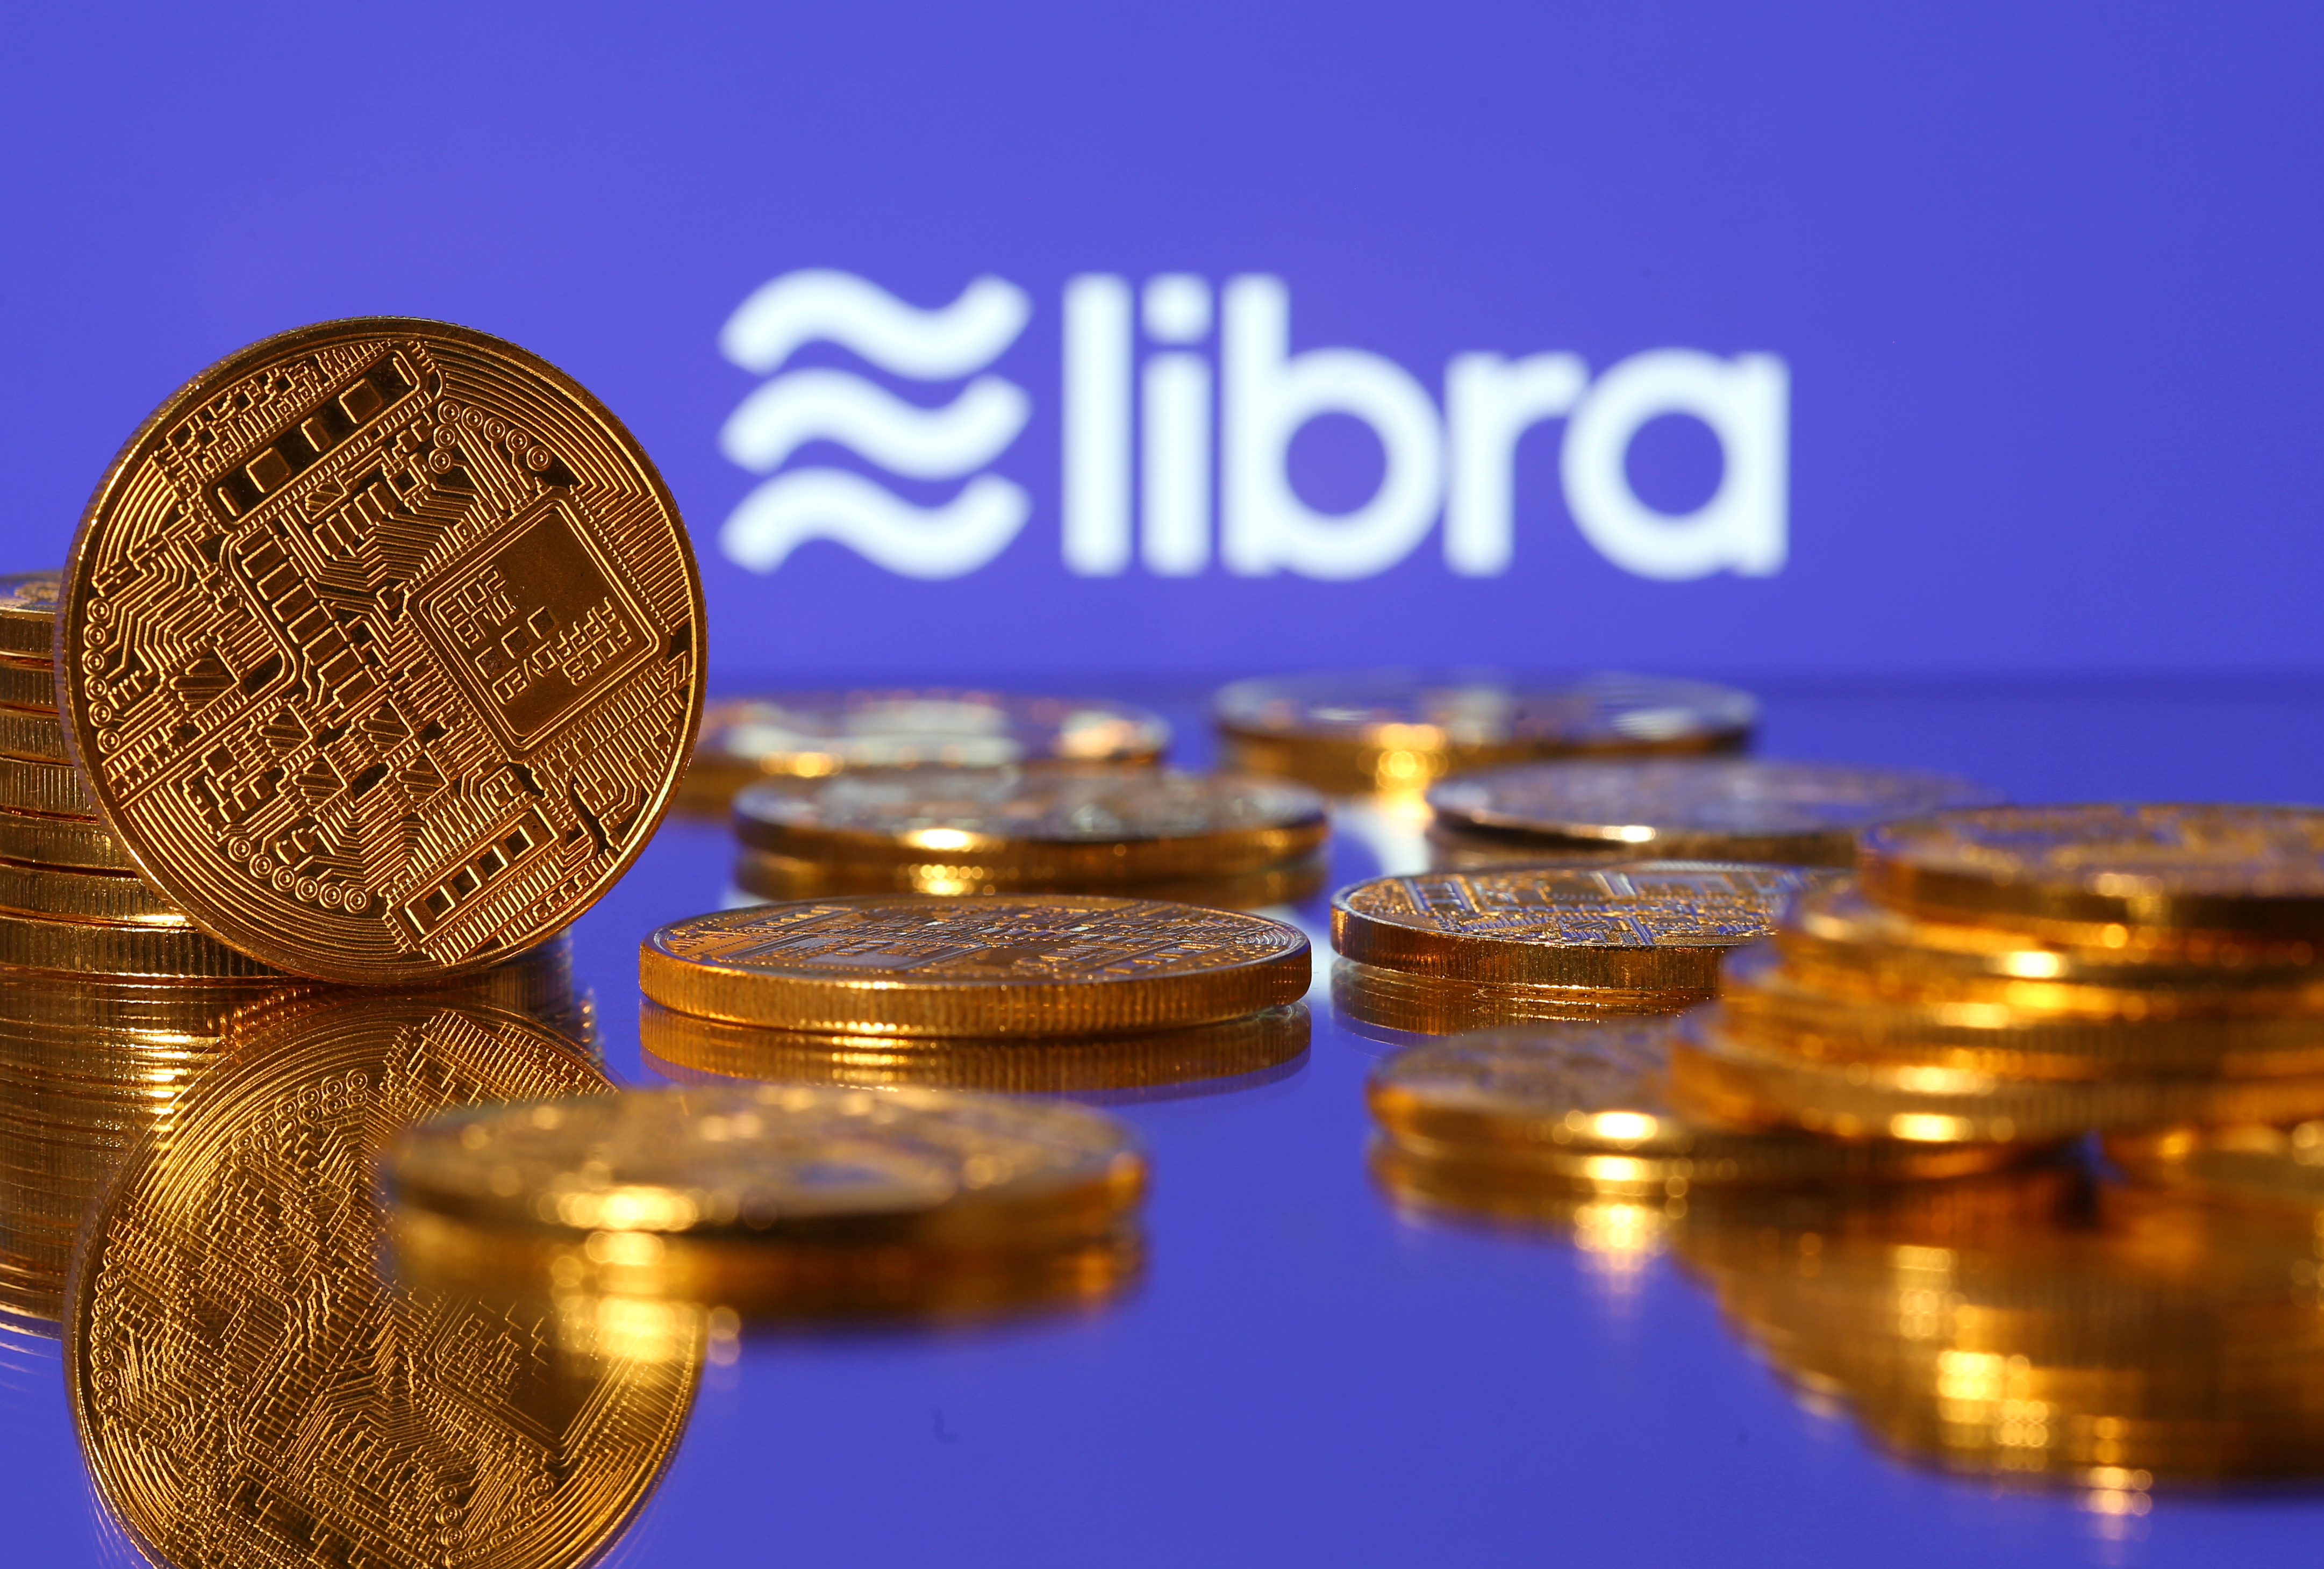 Facebook's Libra cryptocurrency faces new hurdle from G7 nations